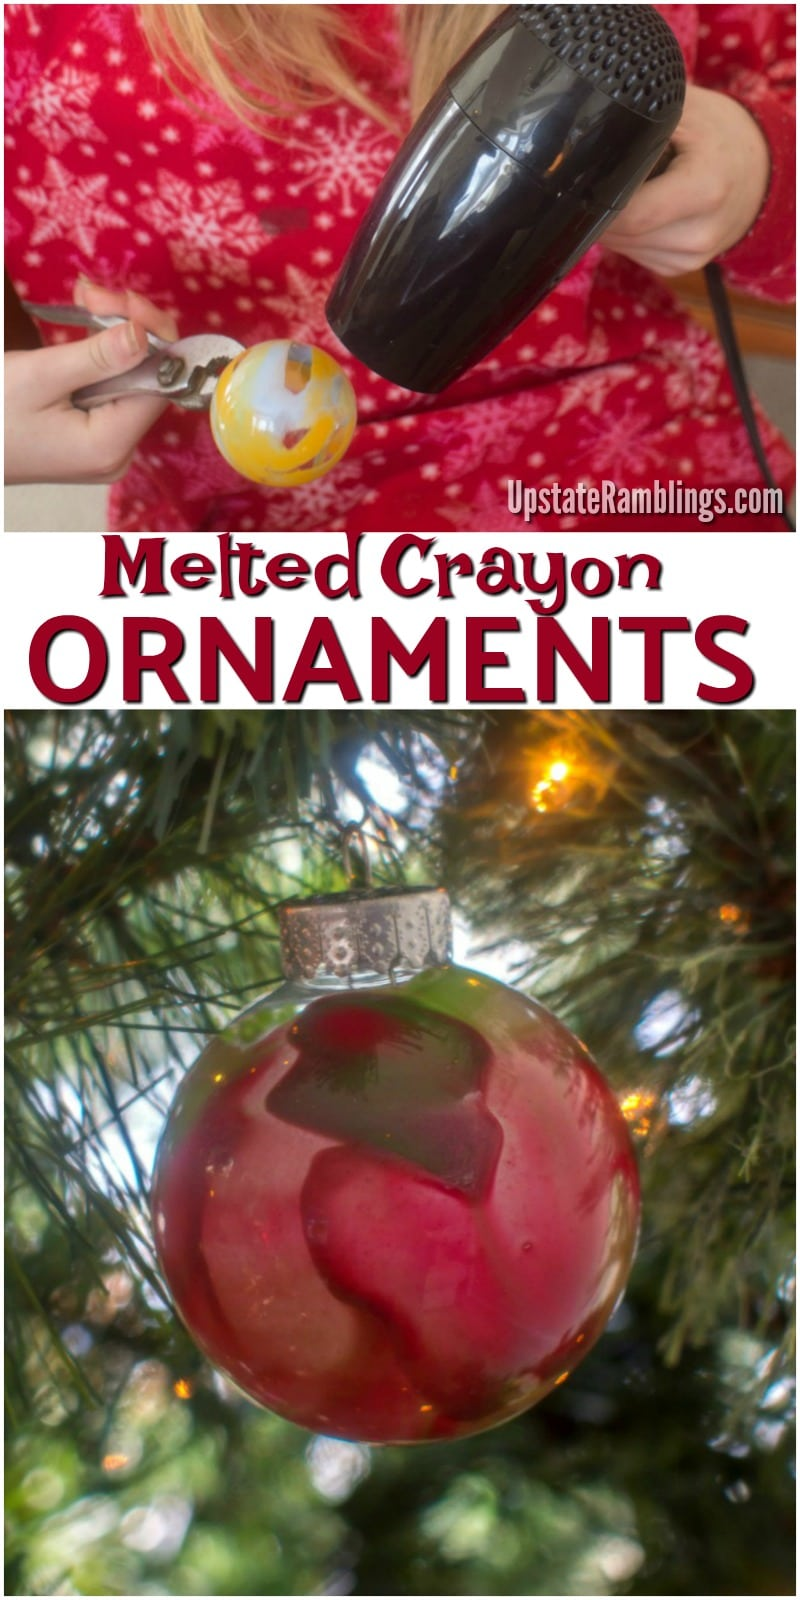 These easy melted crayon Christmas ornaments are pretty and fun to make. Make great memories with your family this holiday season creating this fun DIY ornament. They also are a great homemade holiday gift idea. #christmas #DIY #homemadechristmas #ornament